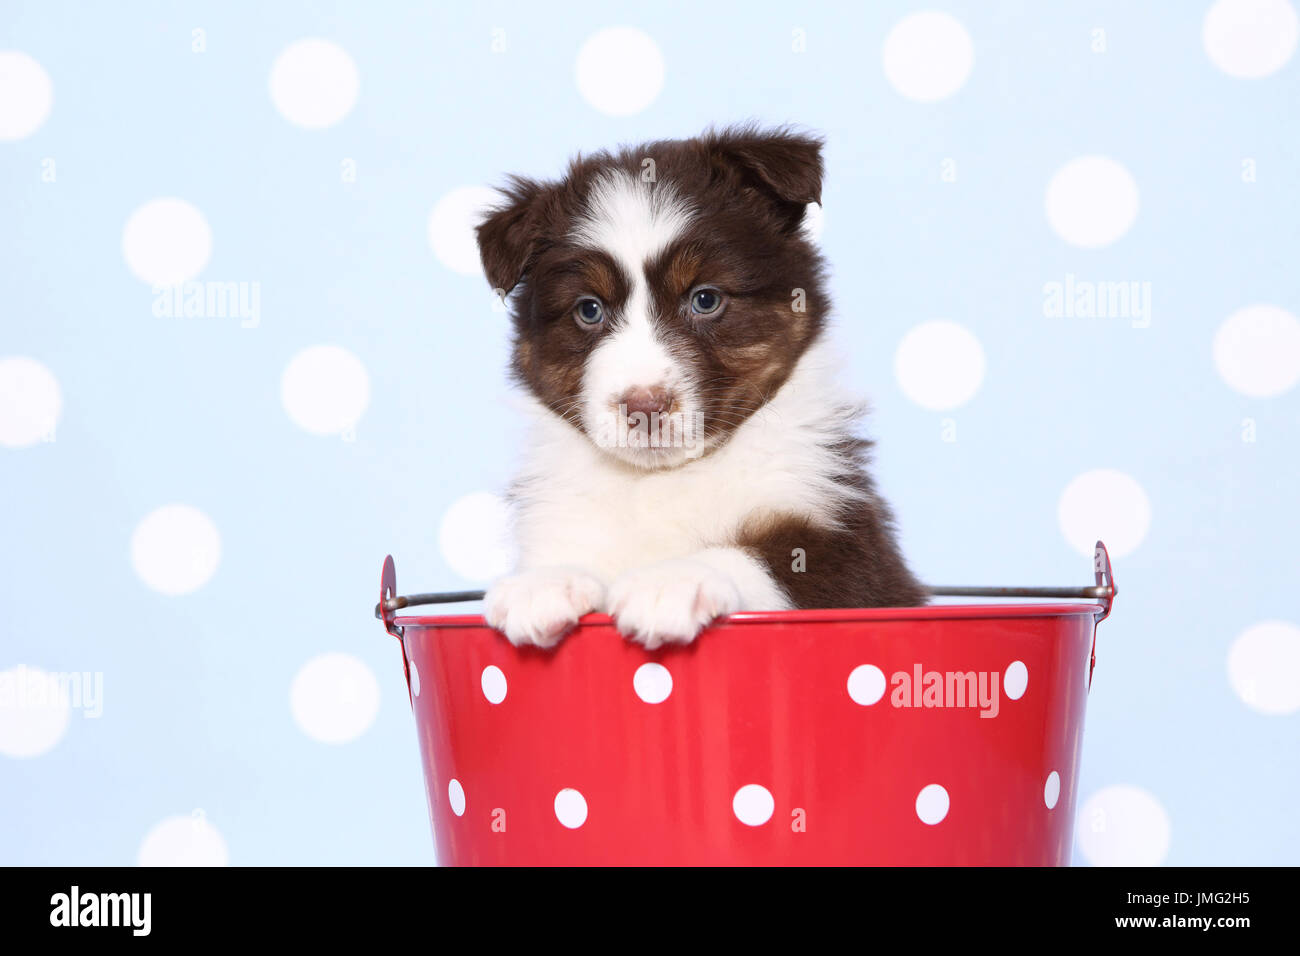 Australian Shepherd. Puppy (6 weeks old) sitting in a red bucket with white polka dots. Studio picture against a blue background with white polka dots. Germany Stock Photo